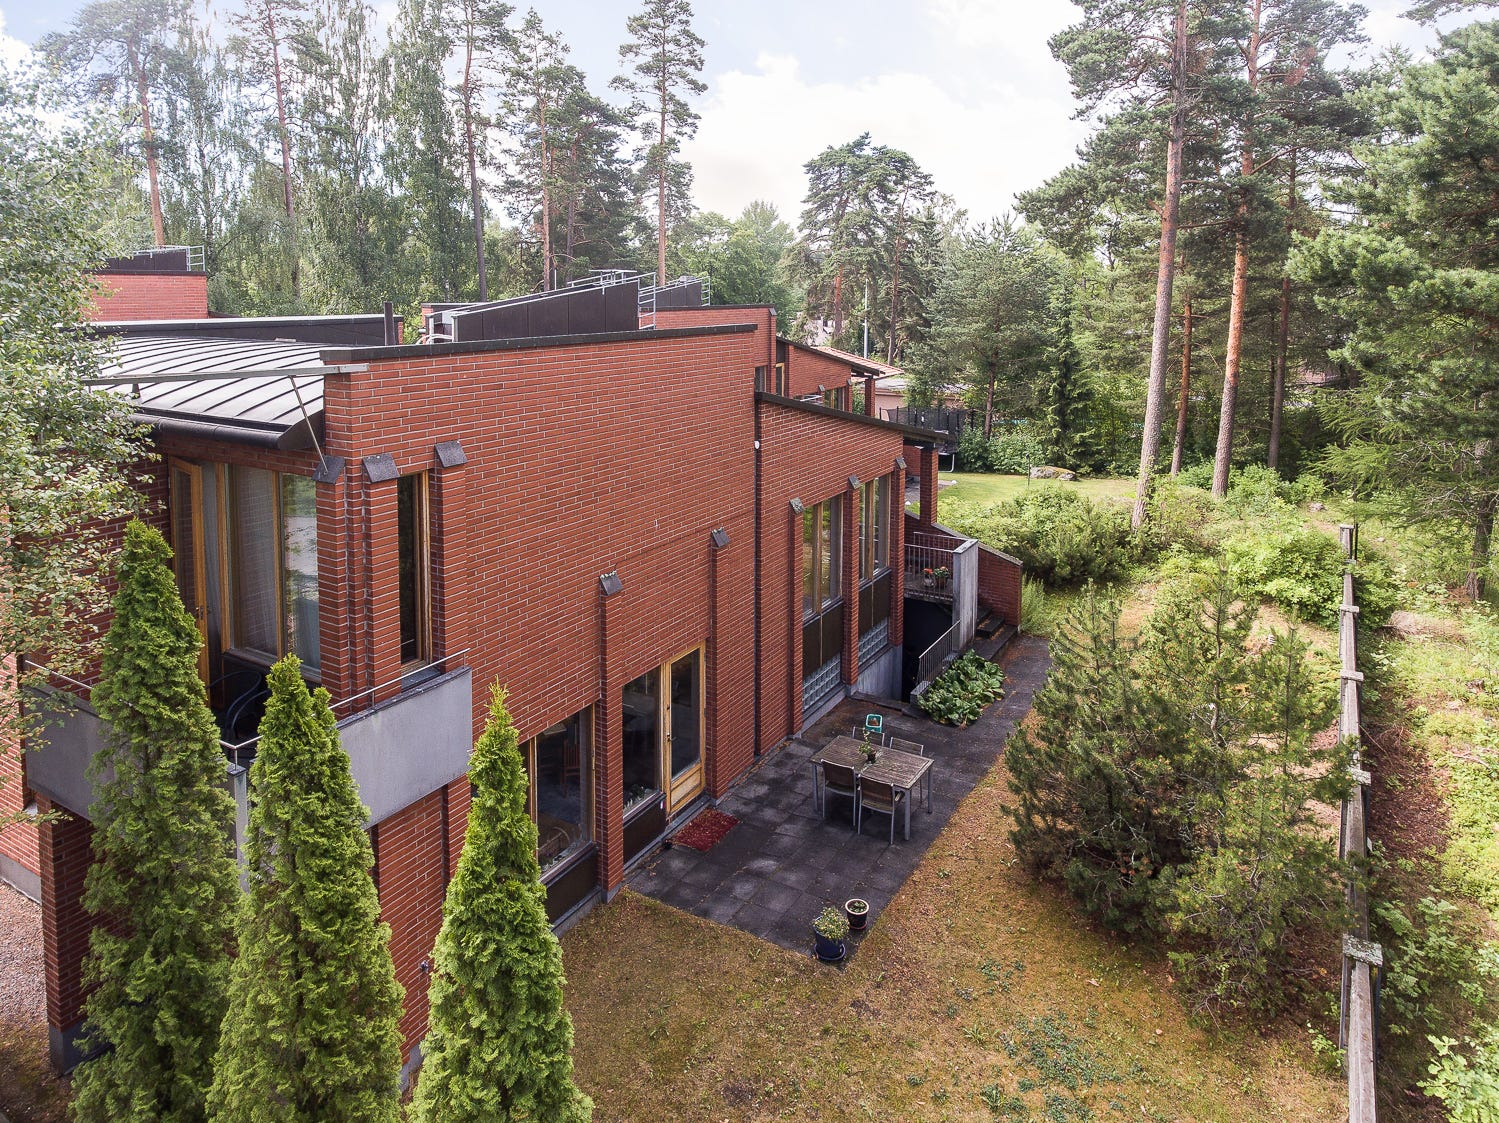 This $1.6 million house in Helsinki, Finland, has high ceilings, three bedrooms, and a spa and sauna.